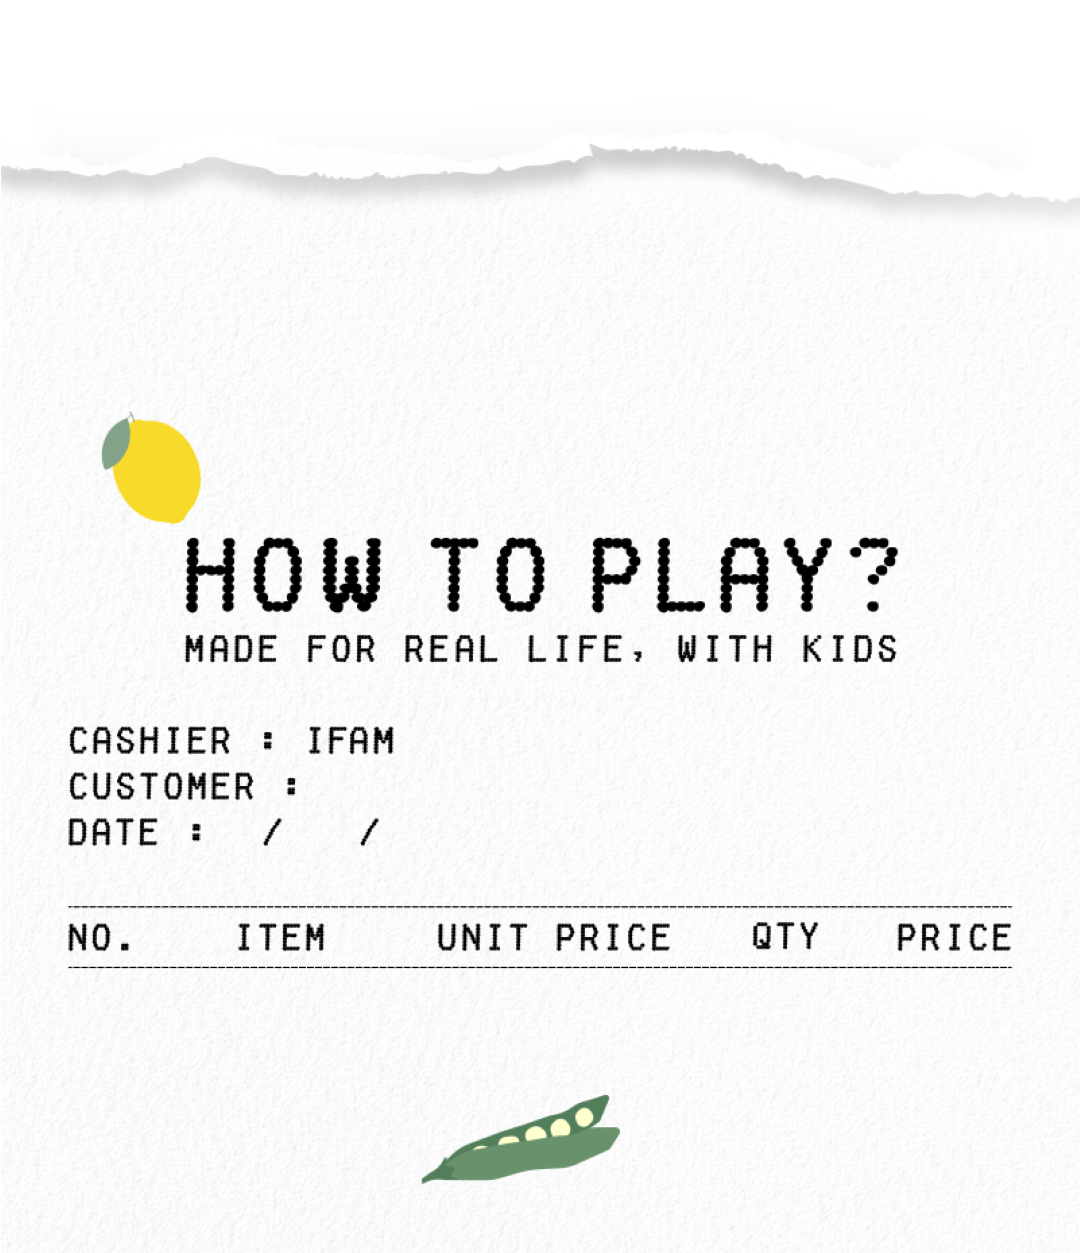 How To Play Happy Market Playset